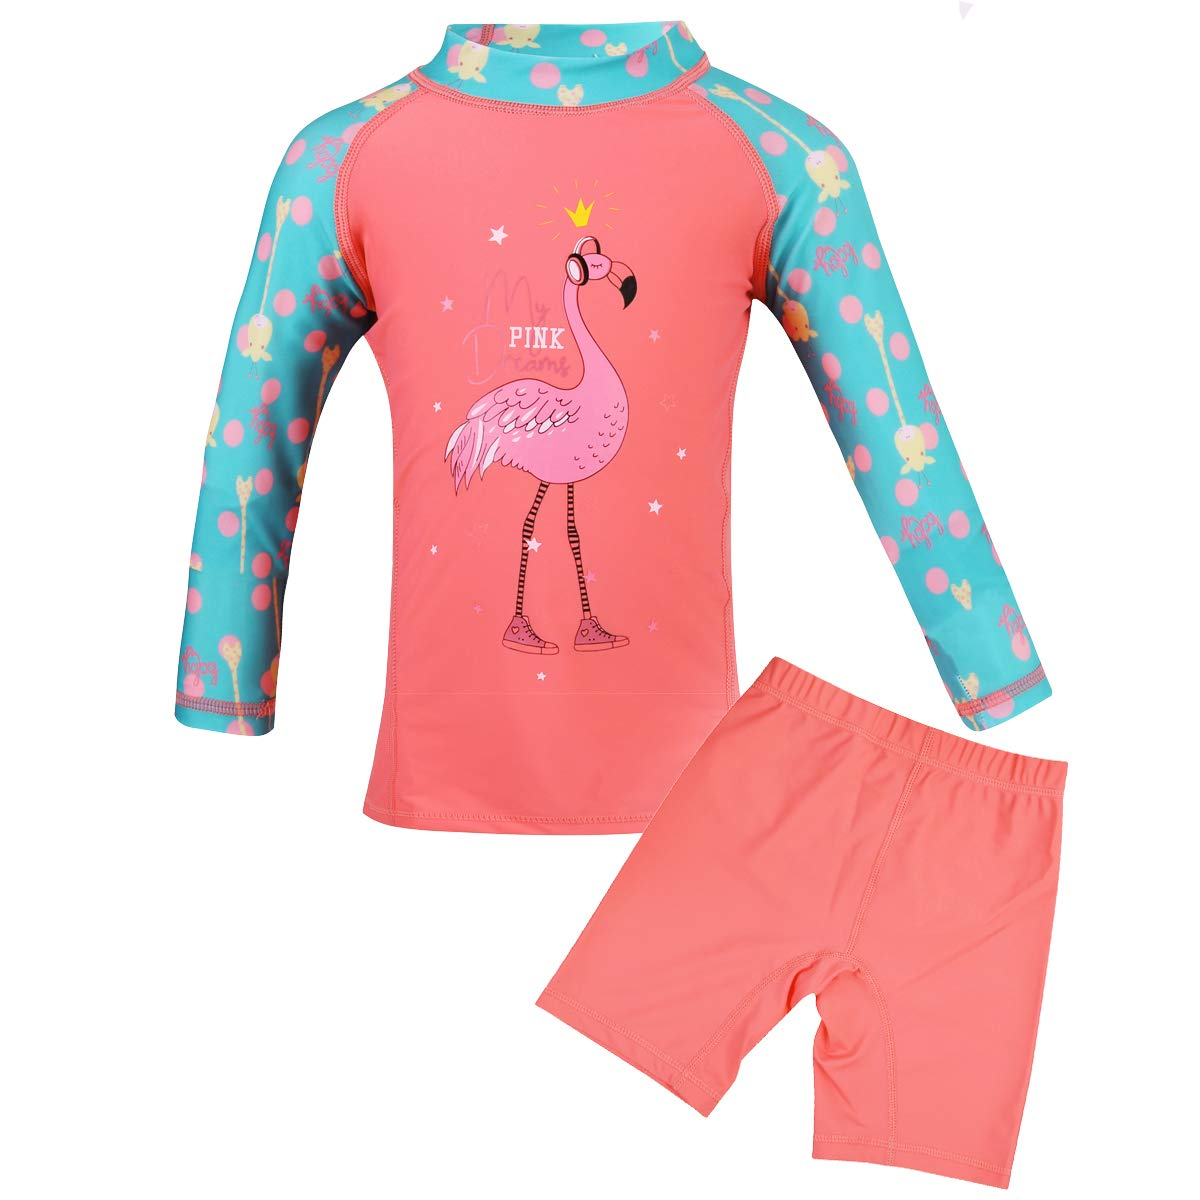 Girls Two-Piece Swimsuit Set UPF 50+ Sun Protection (S-XL) ropsort